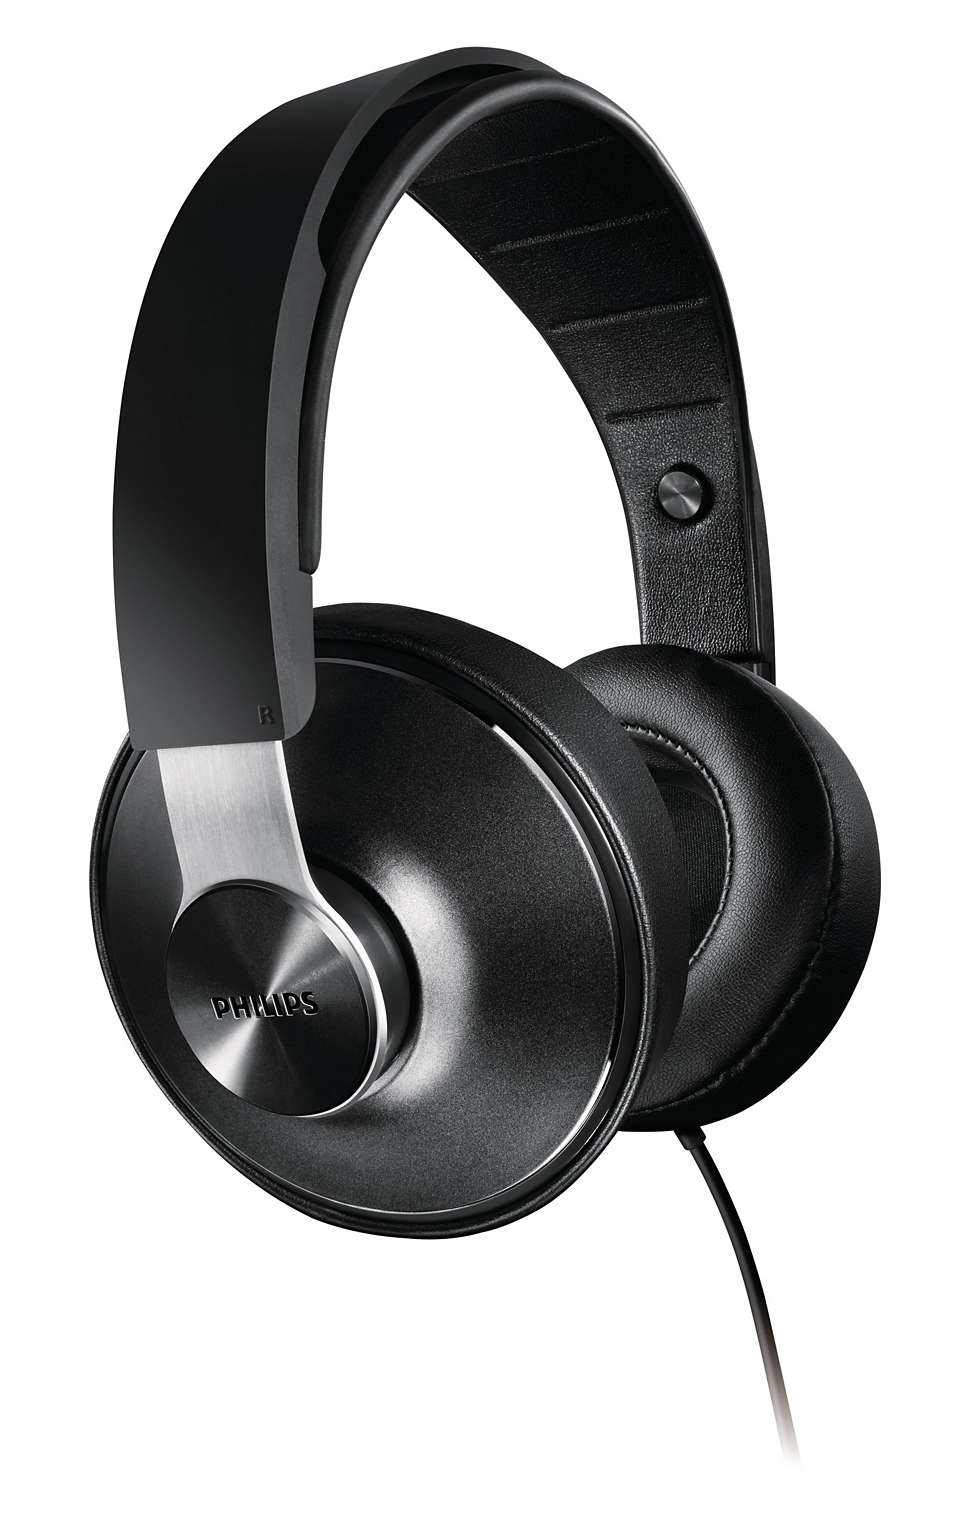 High resolution audio and perfect fit